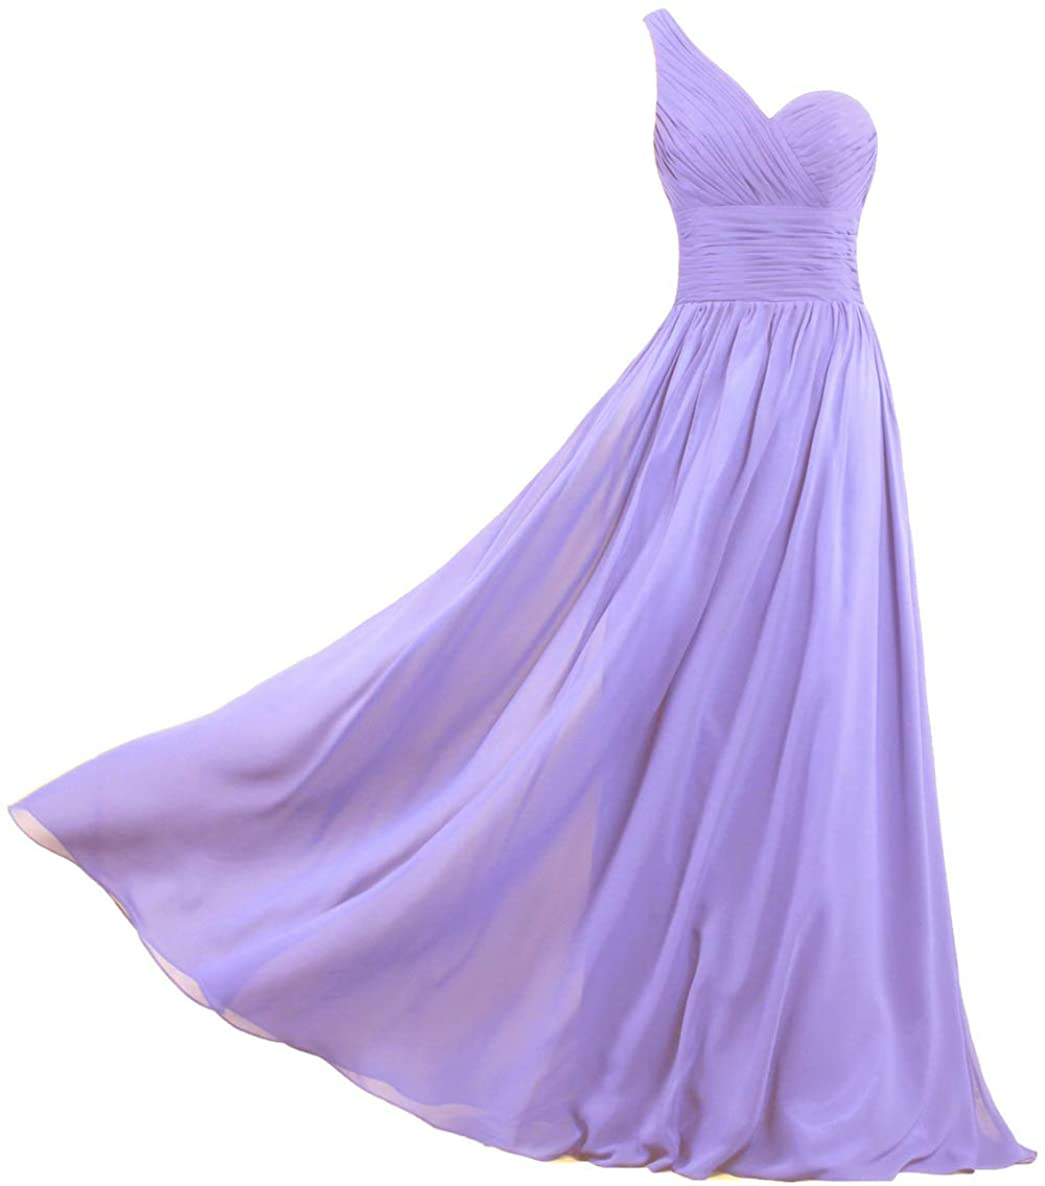 Unbranded* Women's Chiffon One Shoulder Prom Dresses Long Bridesmaid Gowns